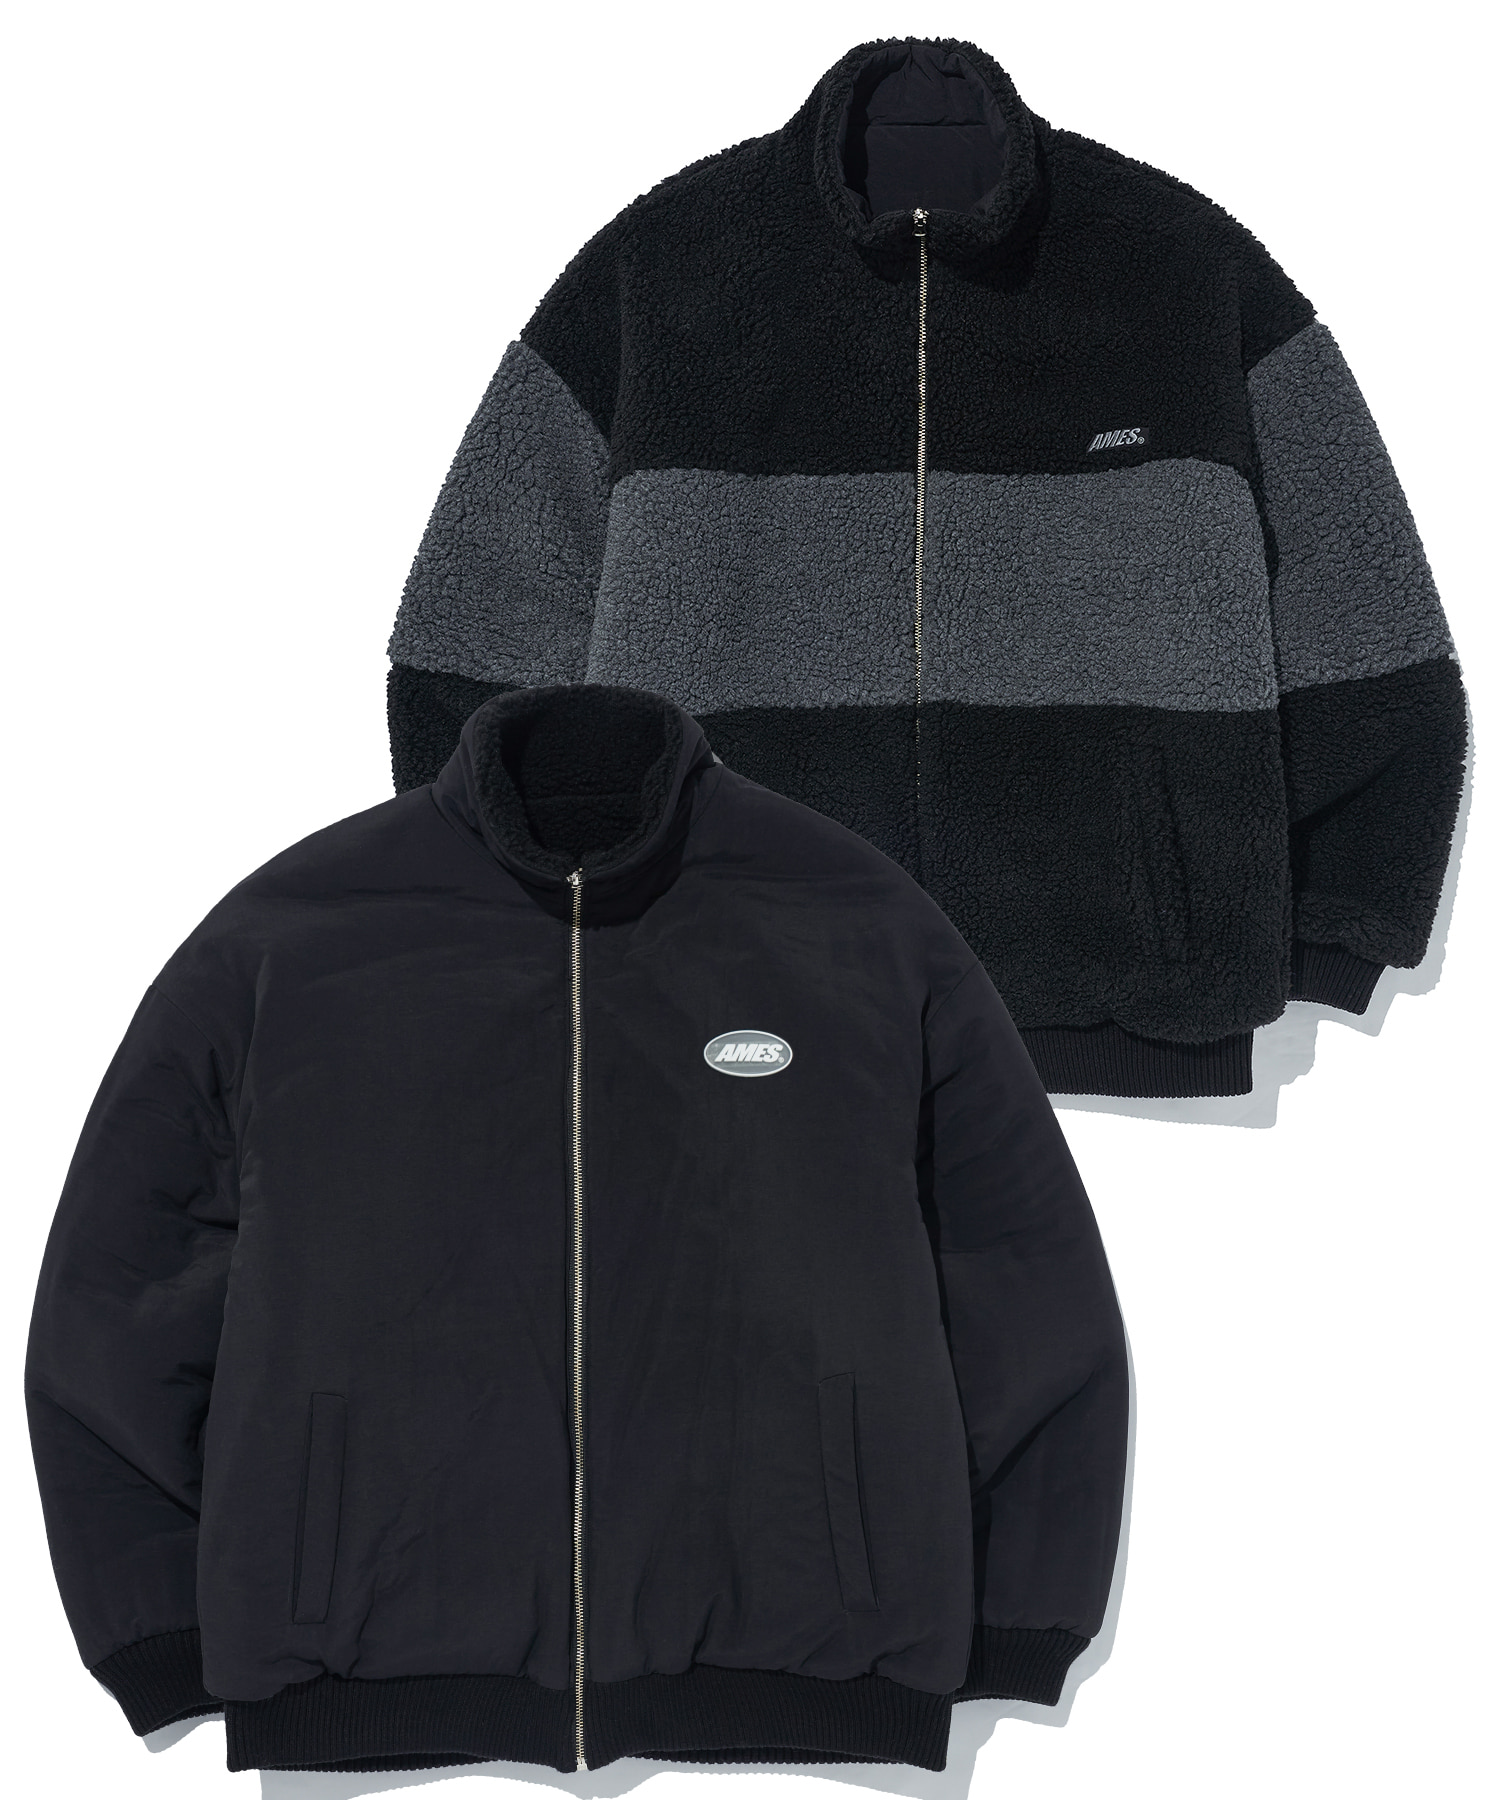 REVERSIBLE FLEECE JACKET_BK